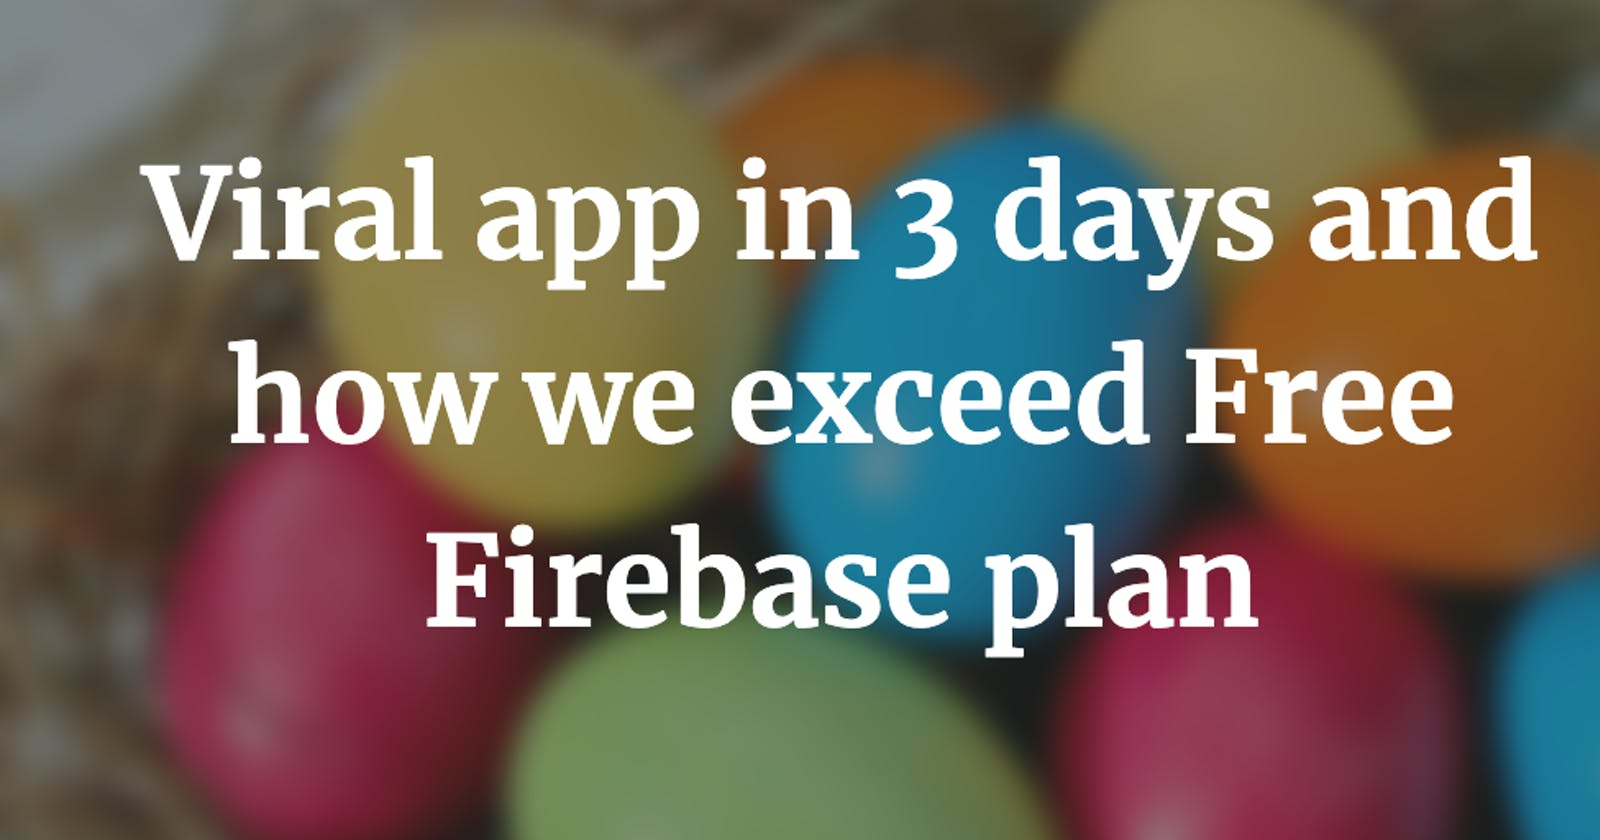 Viral app in 3 days and how we exceeded Free Firebase plan